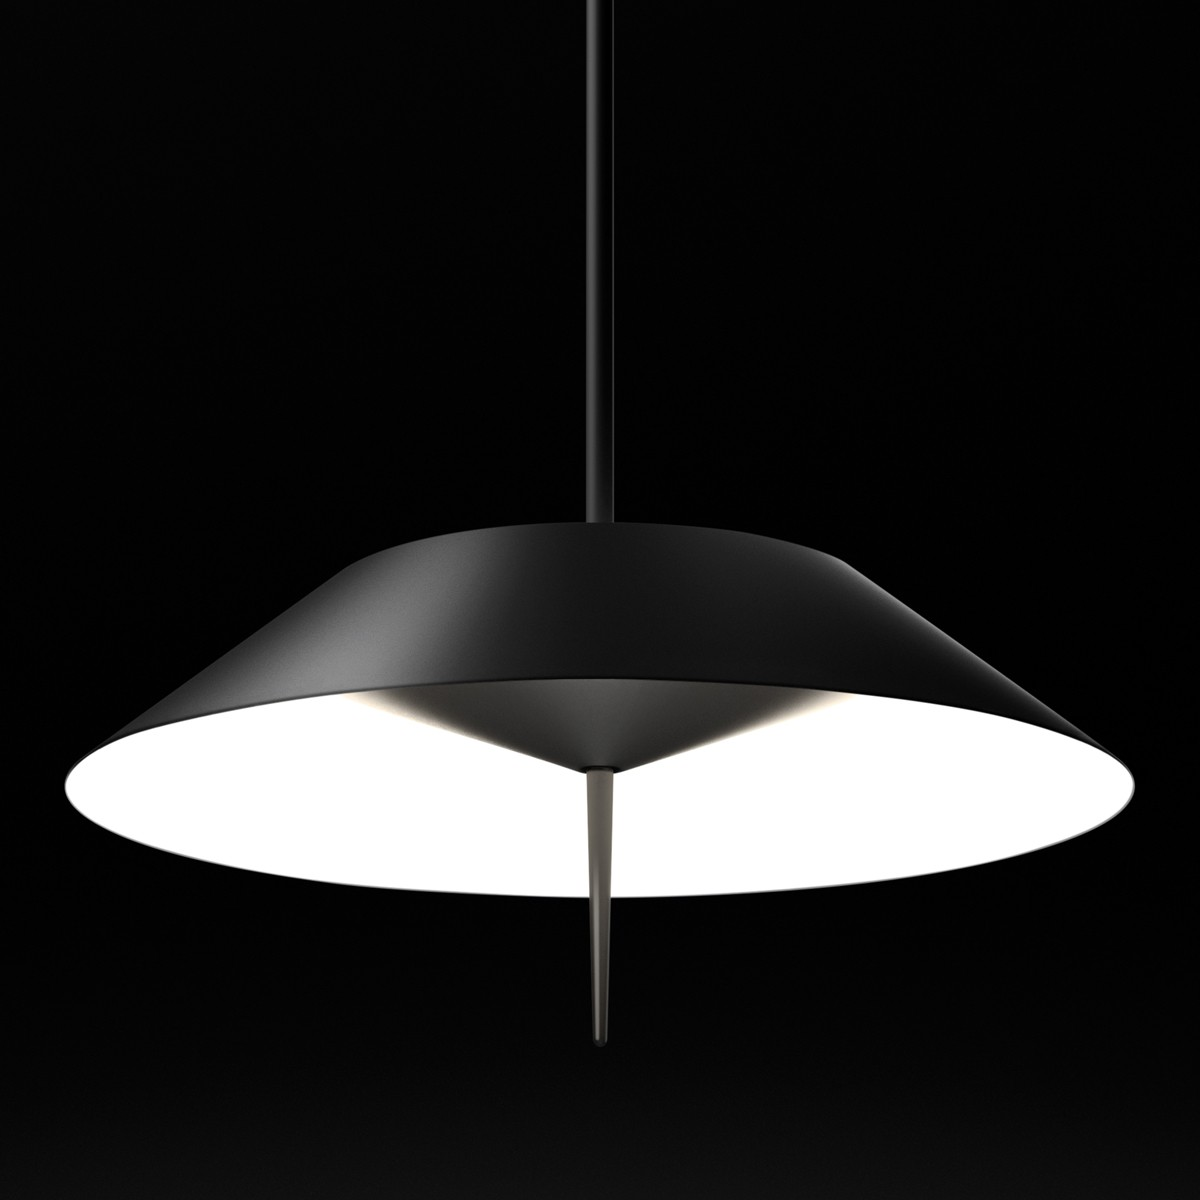 Vibia Mayfair 5525 Pendelleuchte, graphitgrau matt